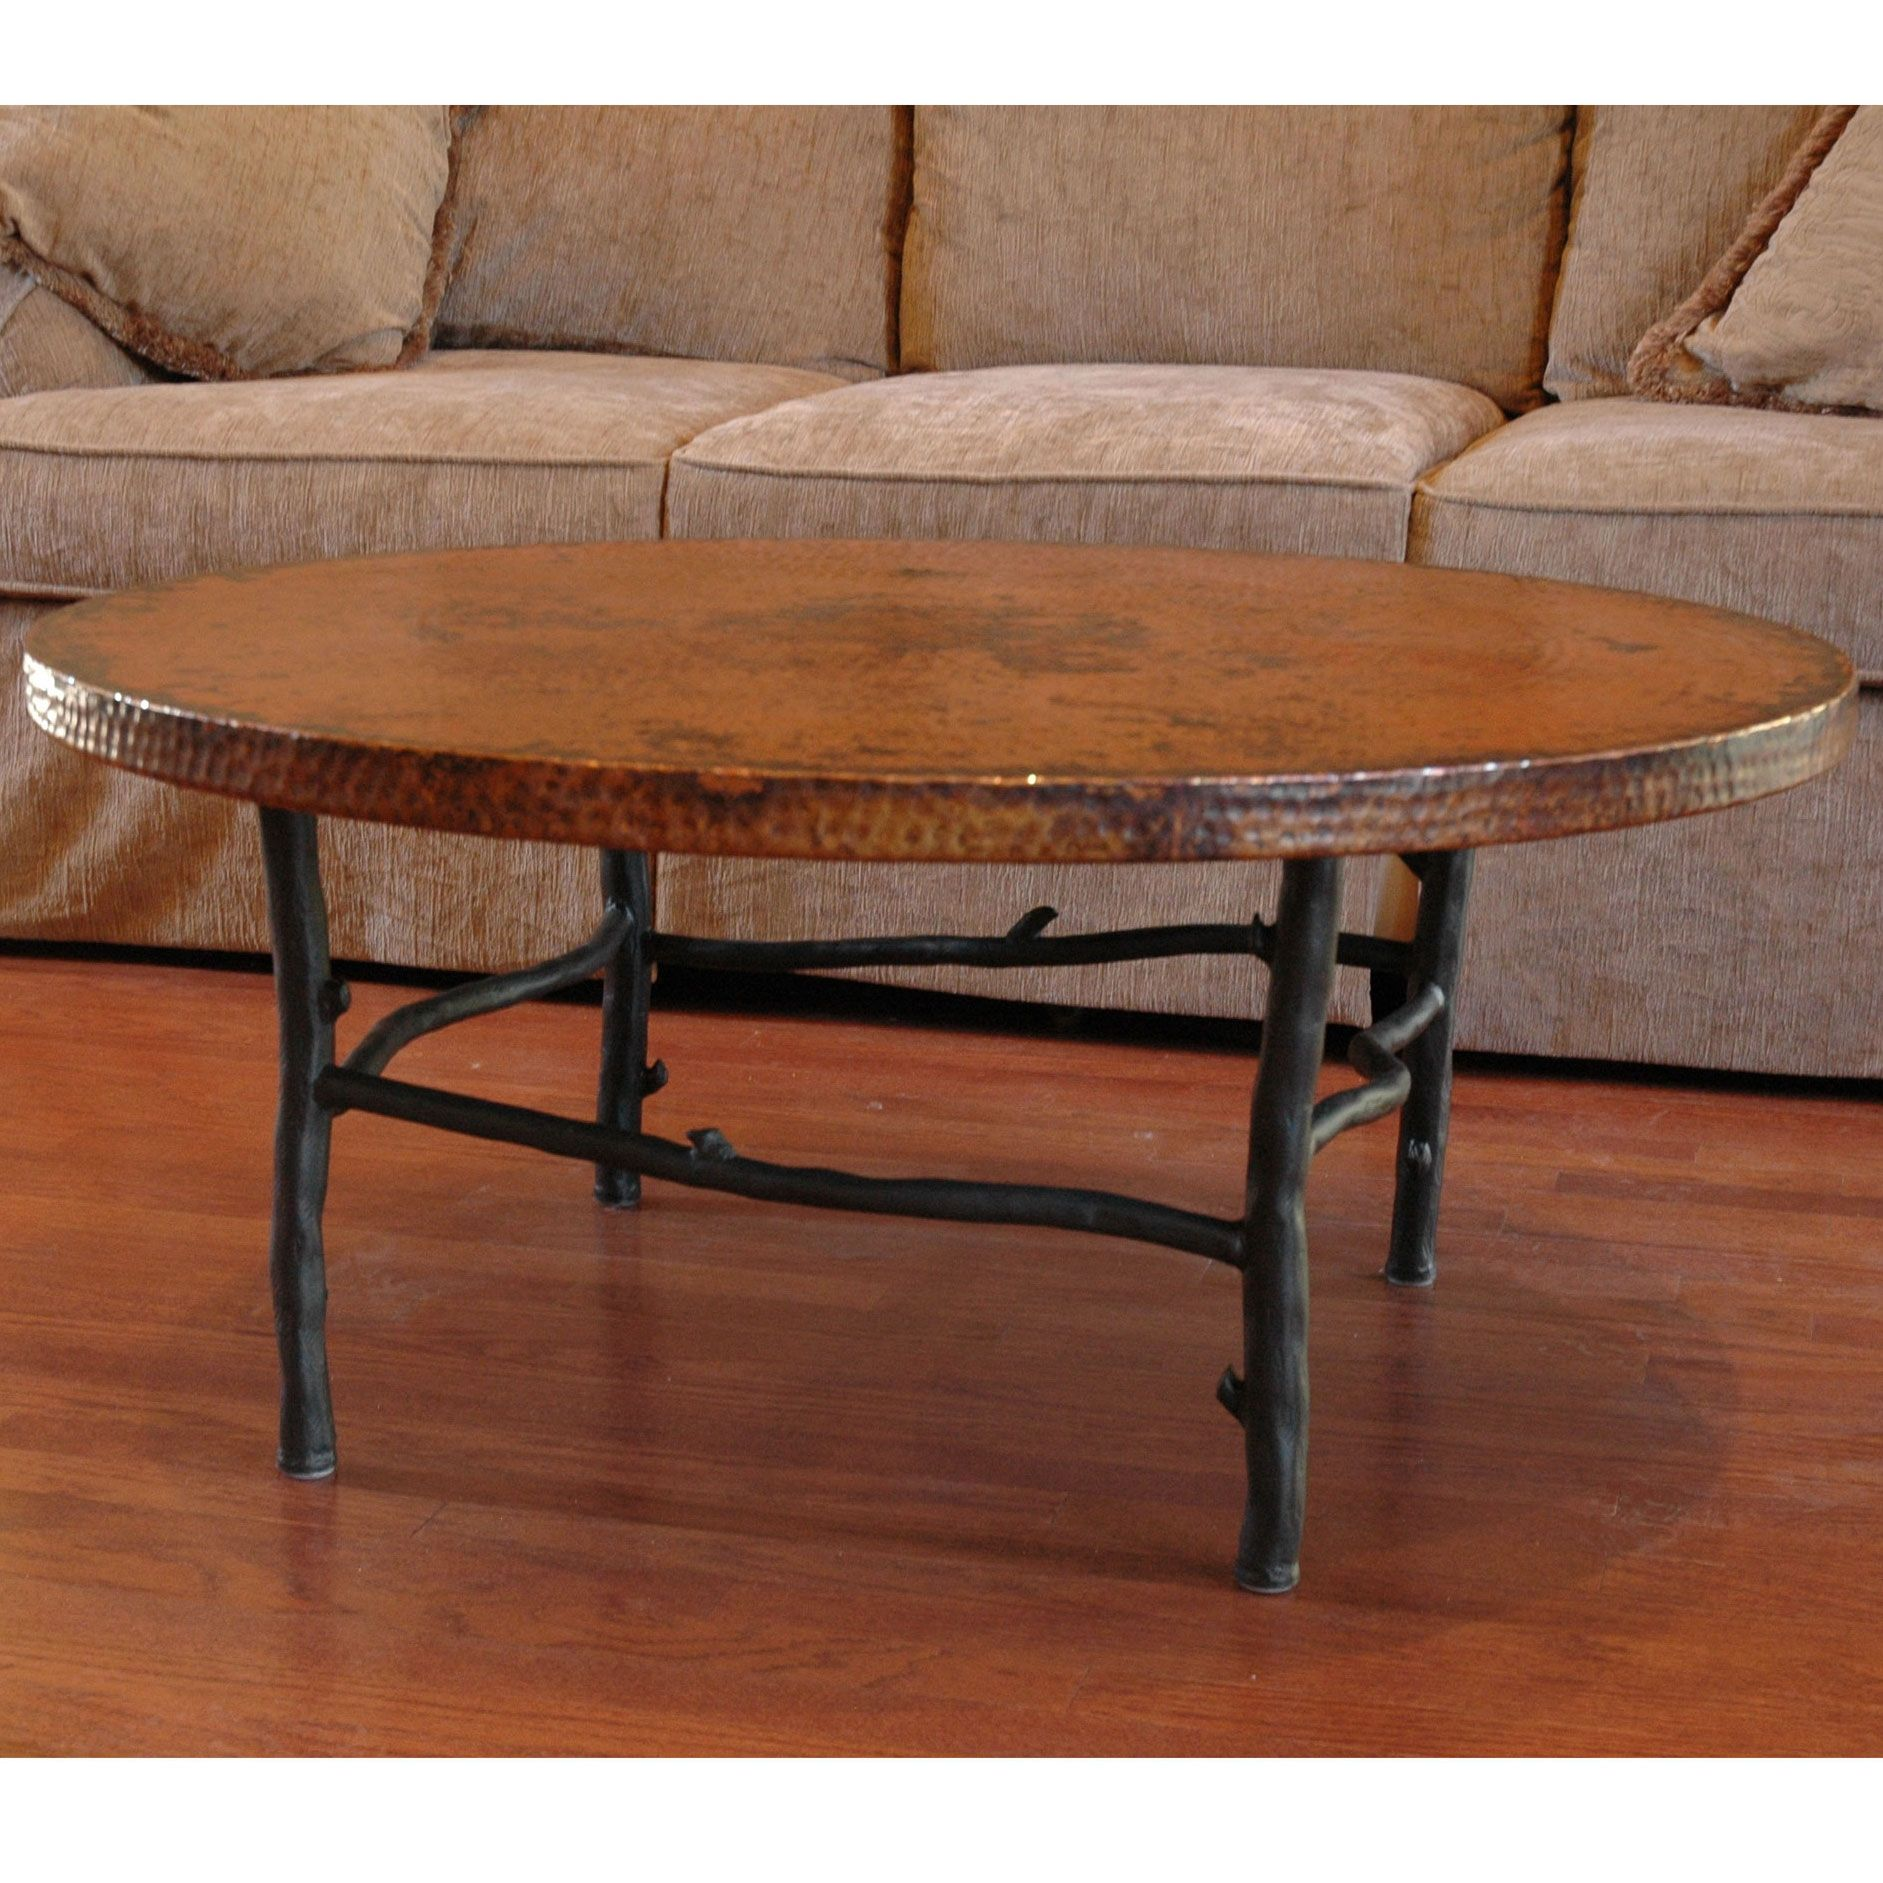 - Rustic South Fork Wrought Iron Coffee Table 42inches Round Iron